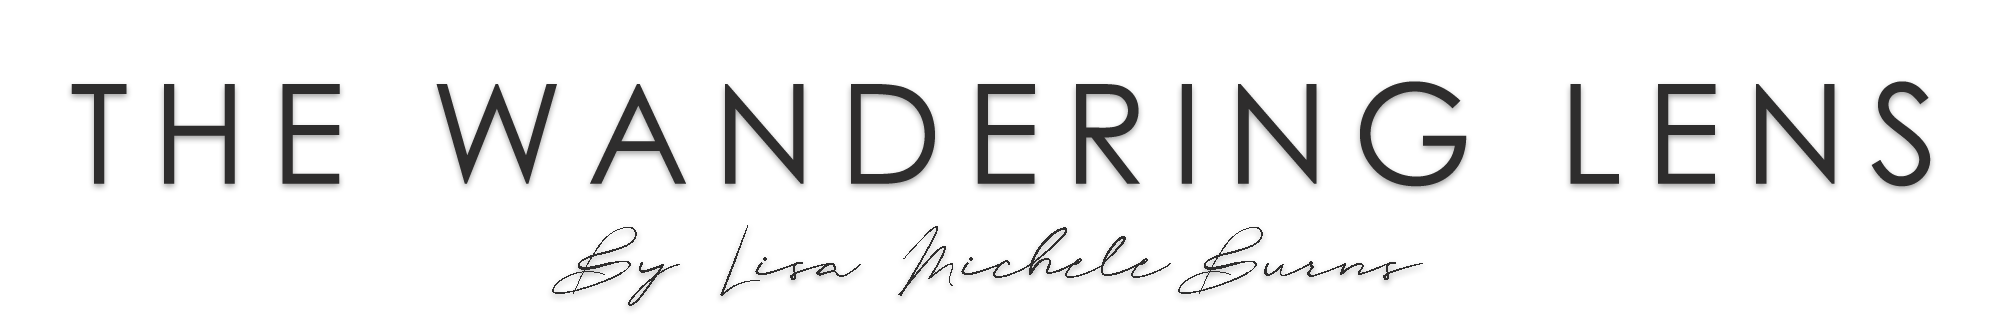 The Wandering Lens Logo